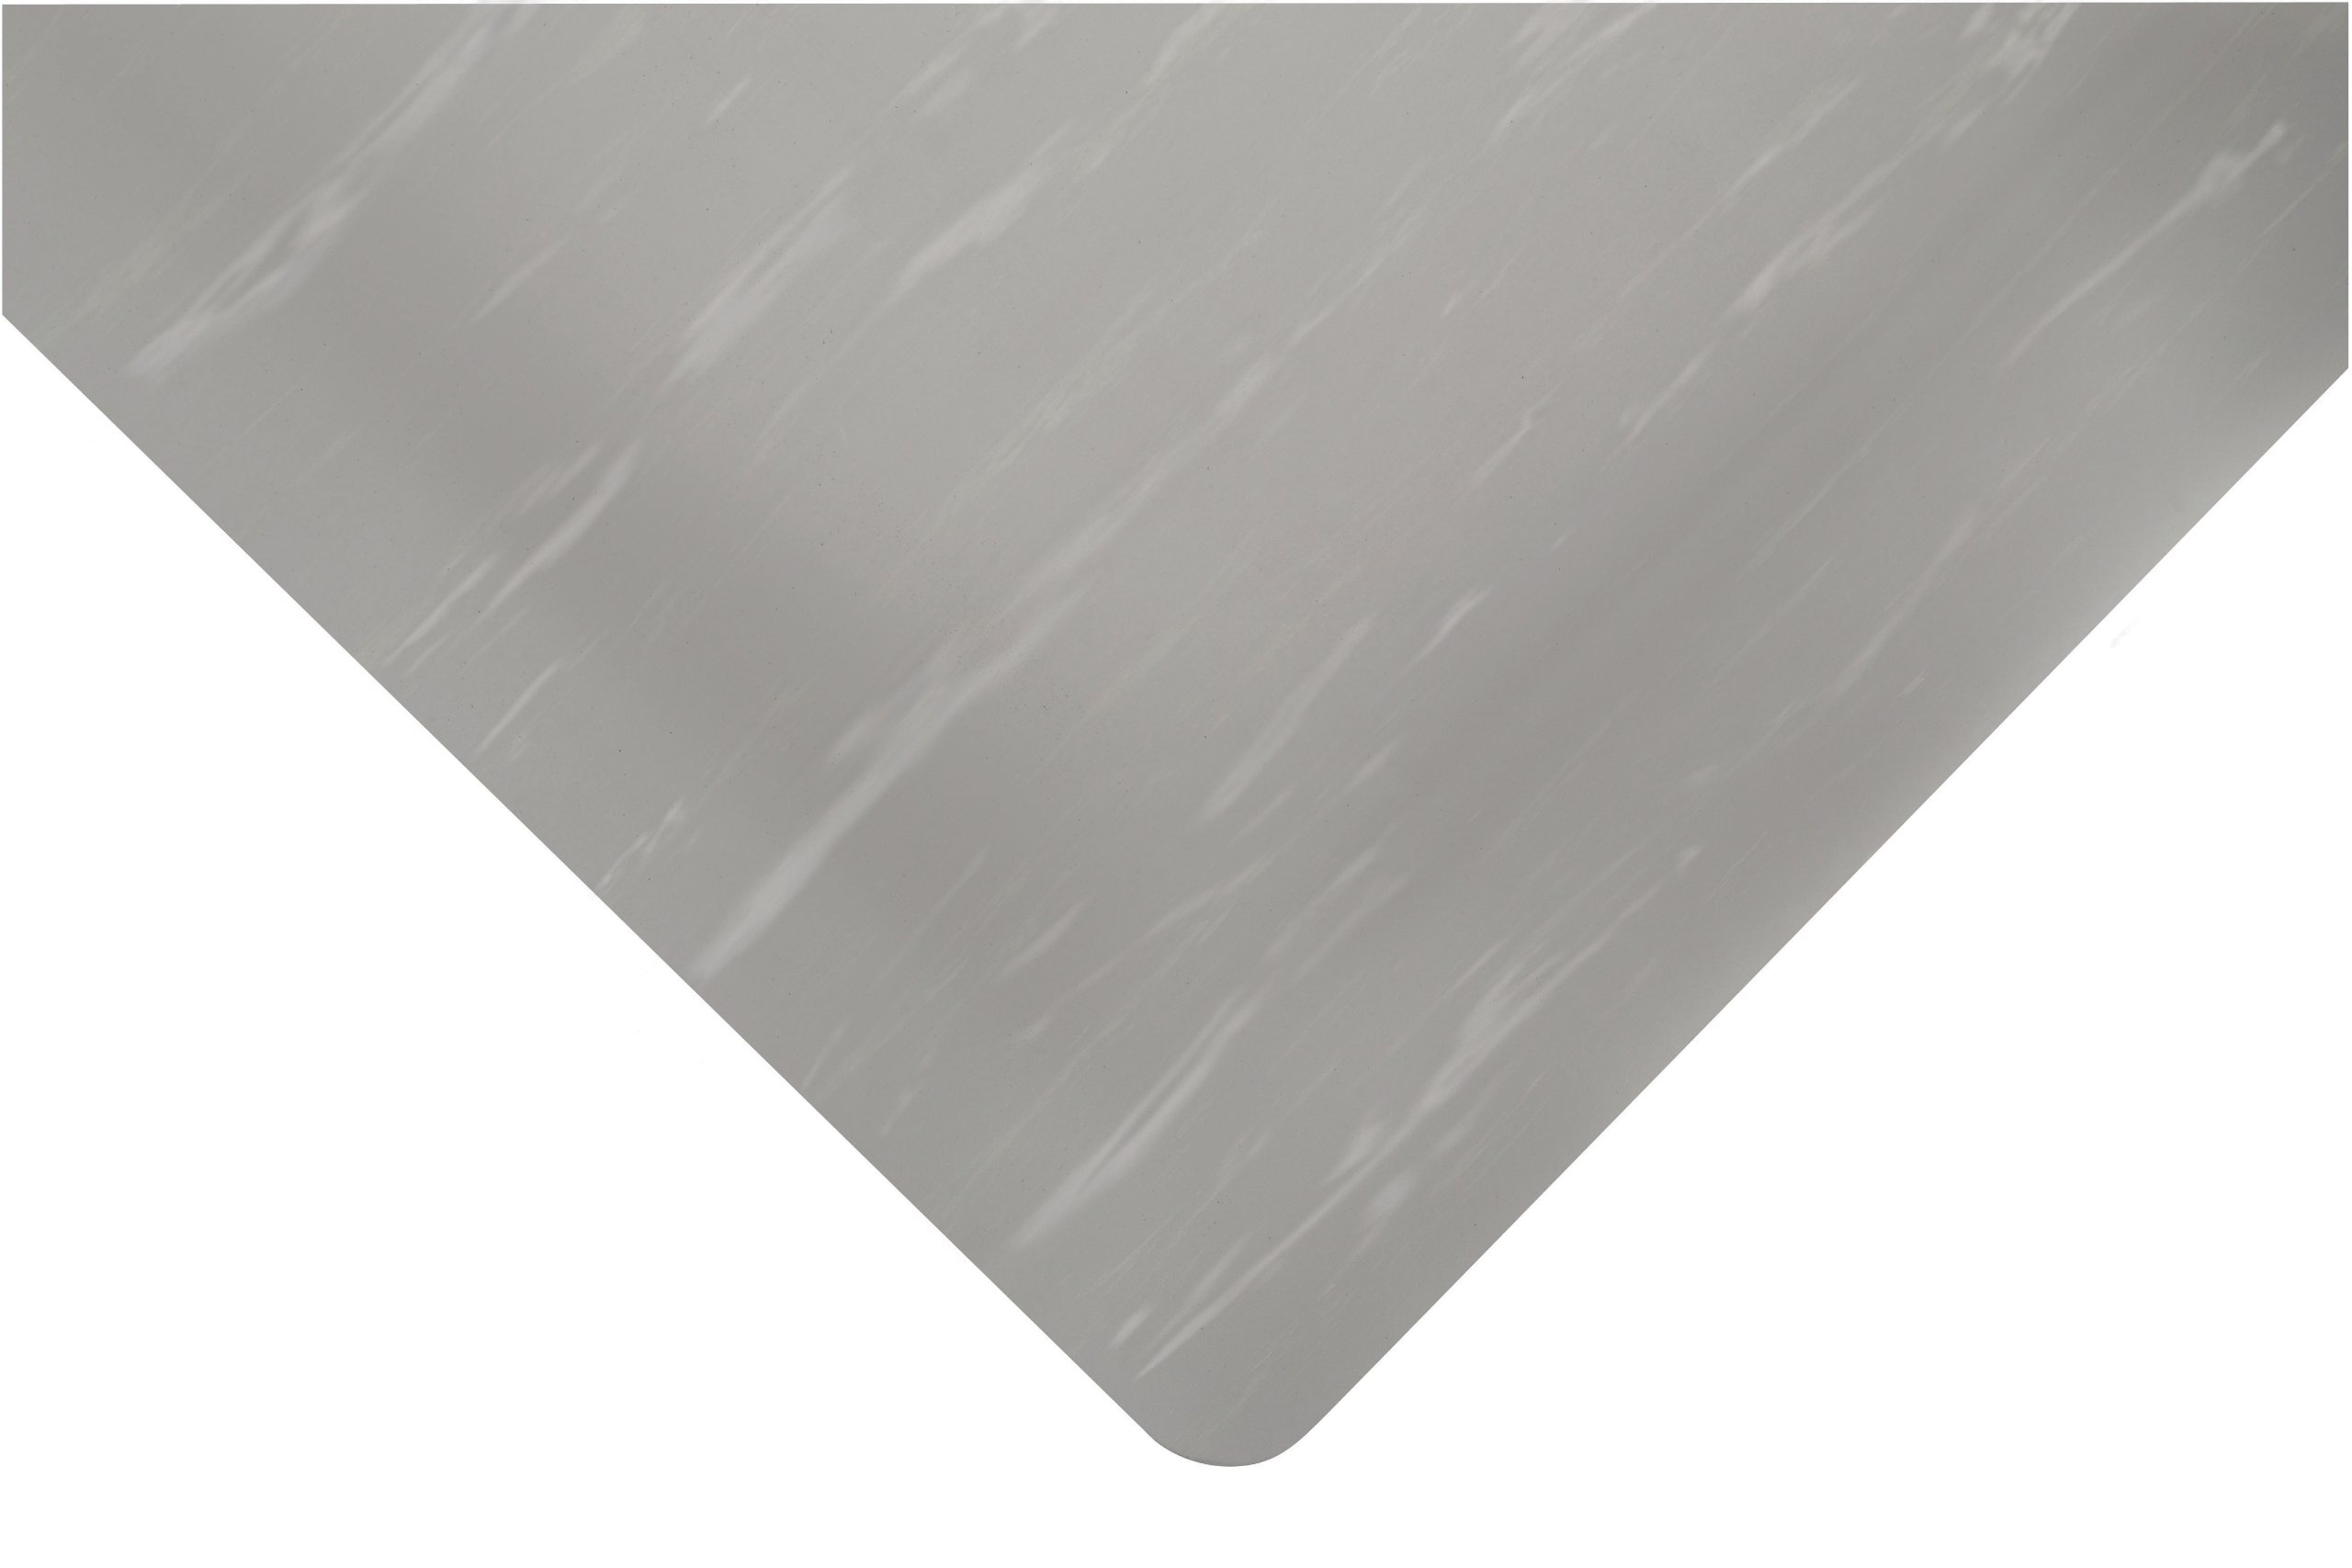 NoTrax 511 Vinyl Marble Tuff Anti-Fatigue Floor Mat, 3' Width x 5' Length x 1/2'' Thickness, Gray